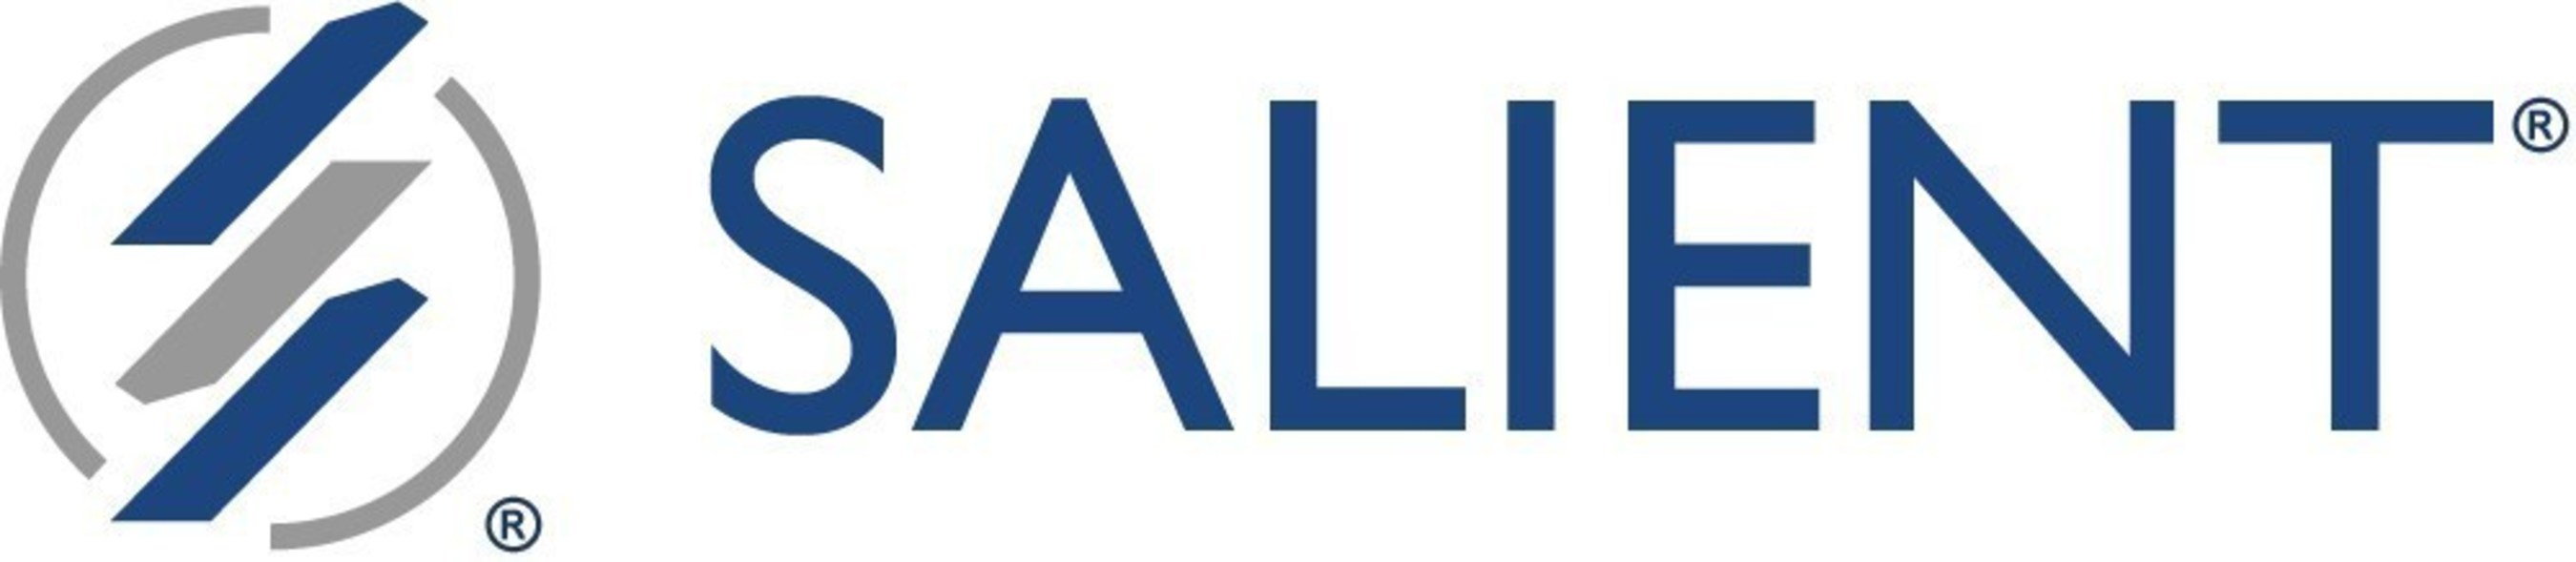 Salient Management Company is a worldwide provider of advanced performance management and decision support ...